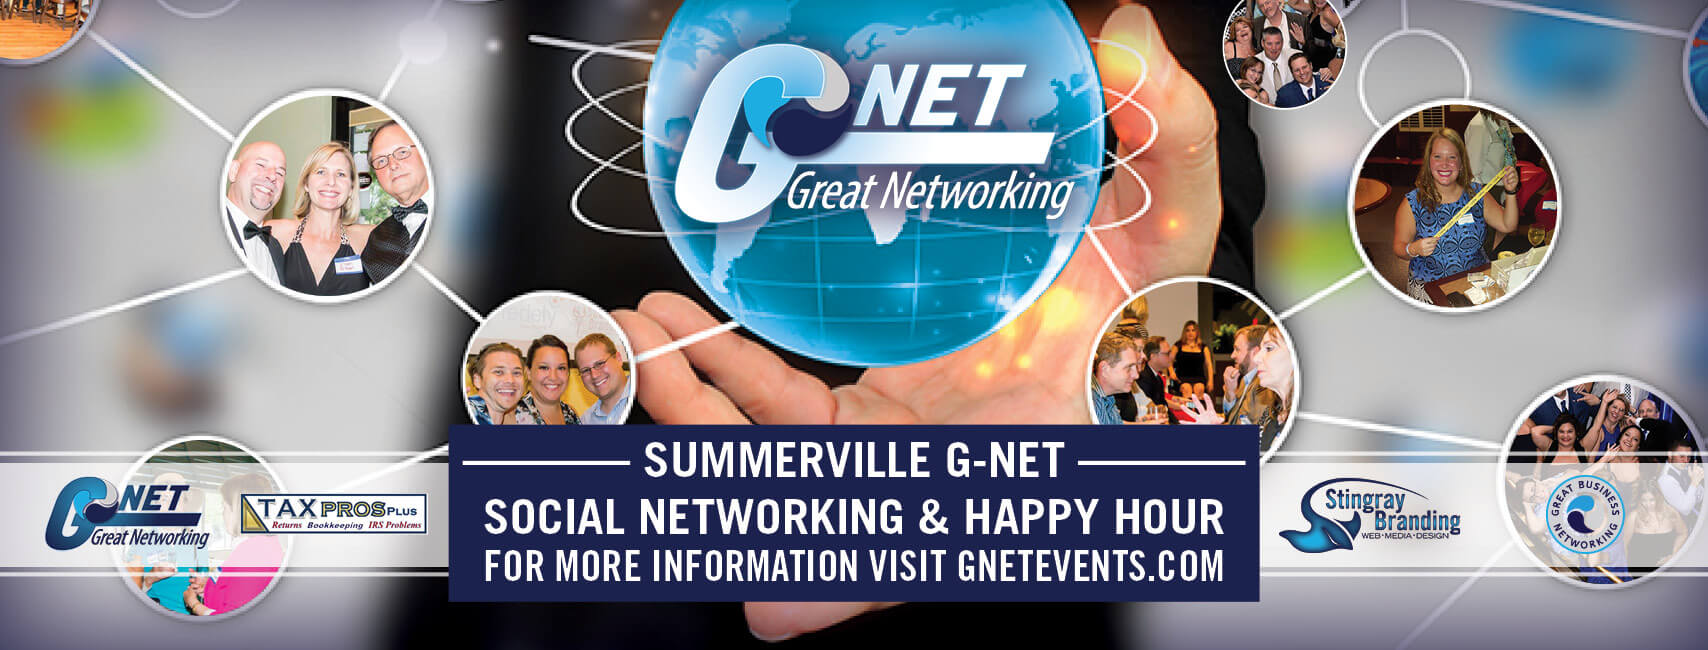 G-Net Summerville social networking and happy hour header image